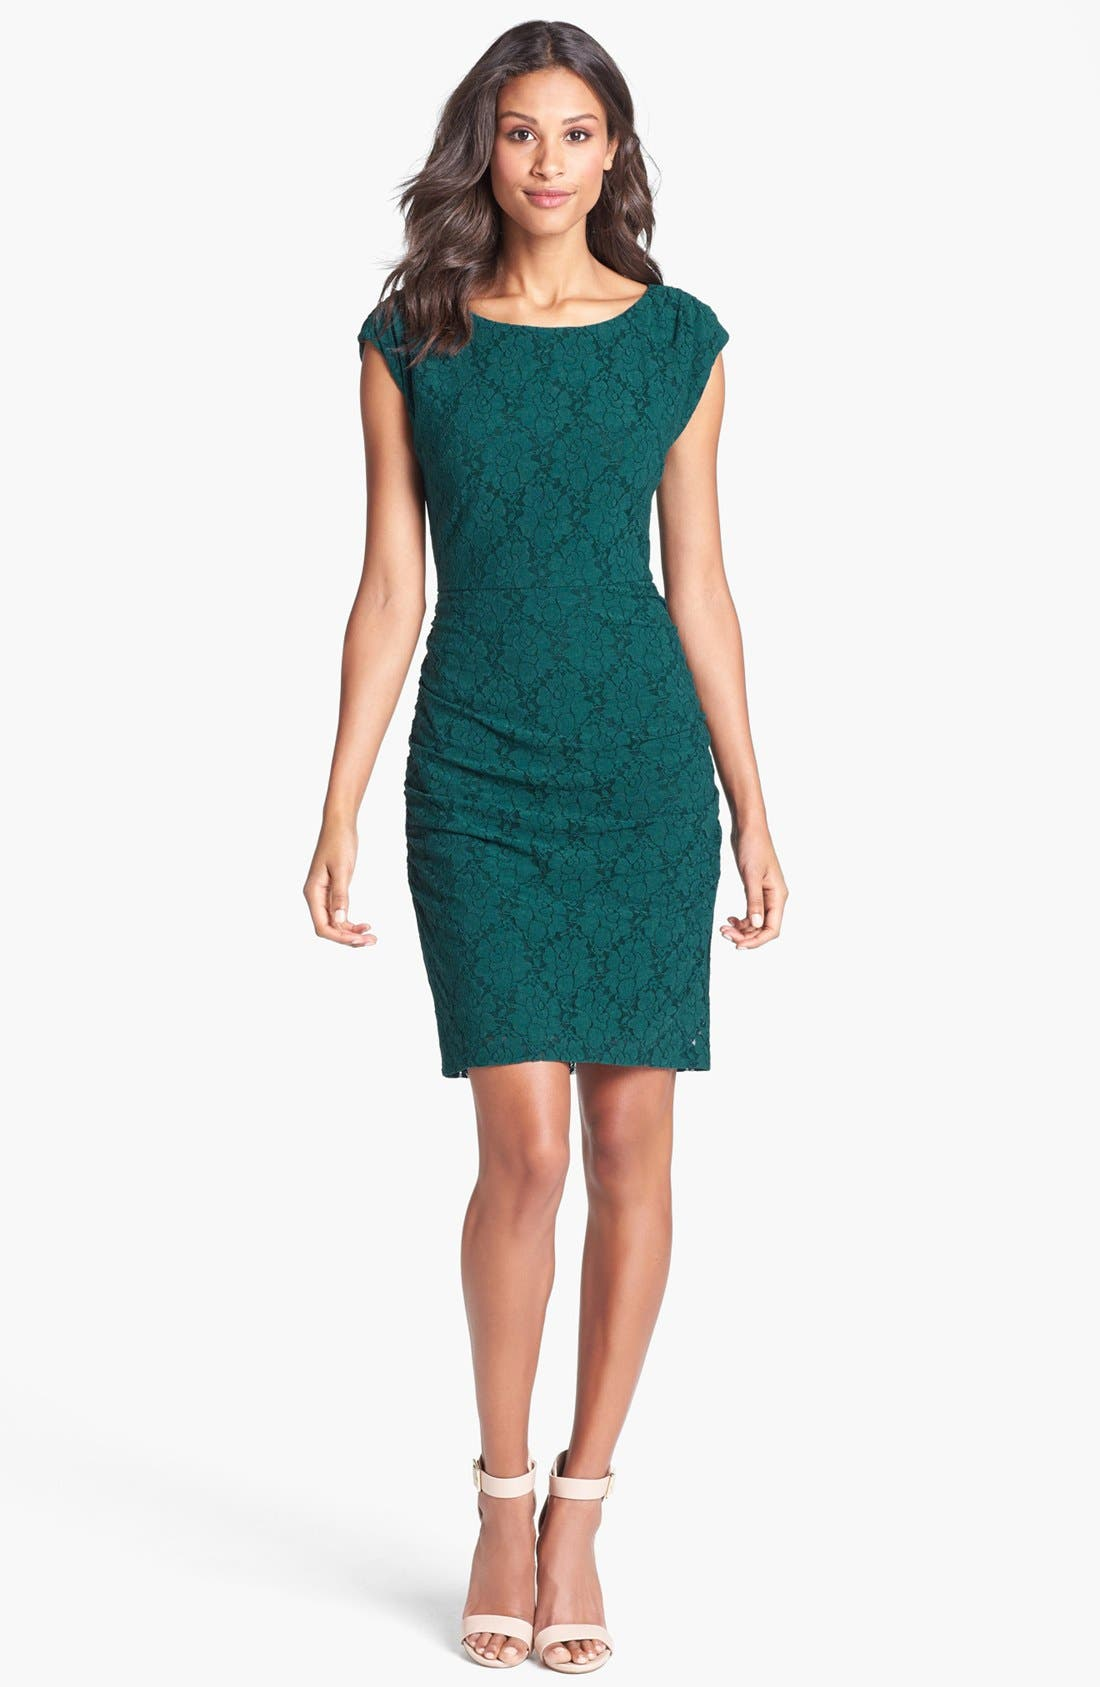 Alternate Image 1 Selected - Laundry by Shelli Segal Cap Sleeve Shirred Lace Dress